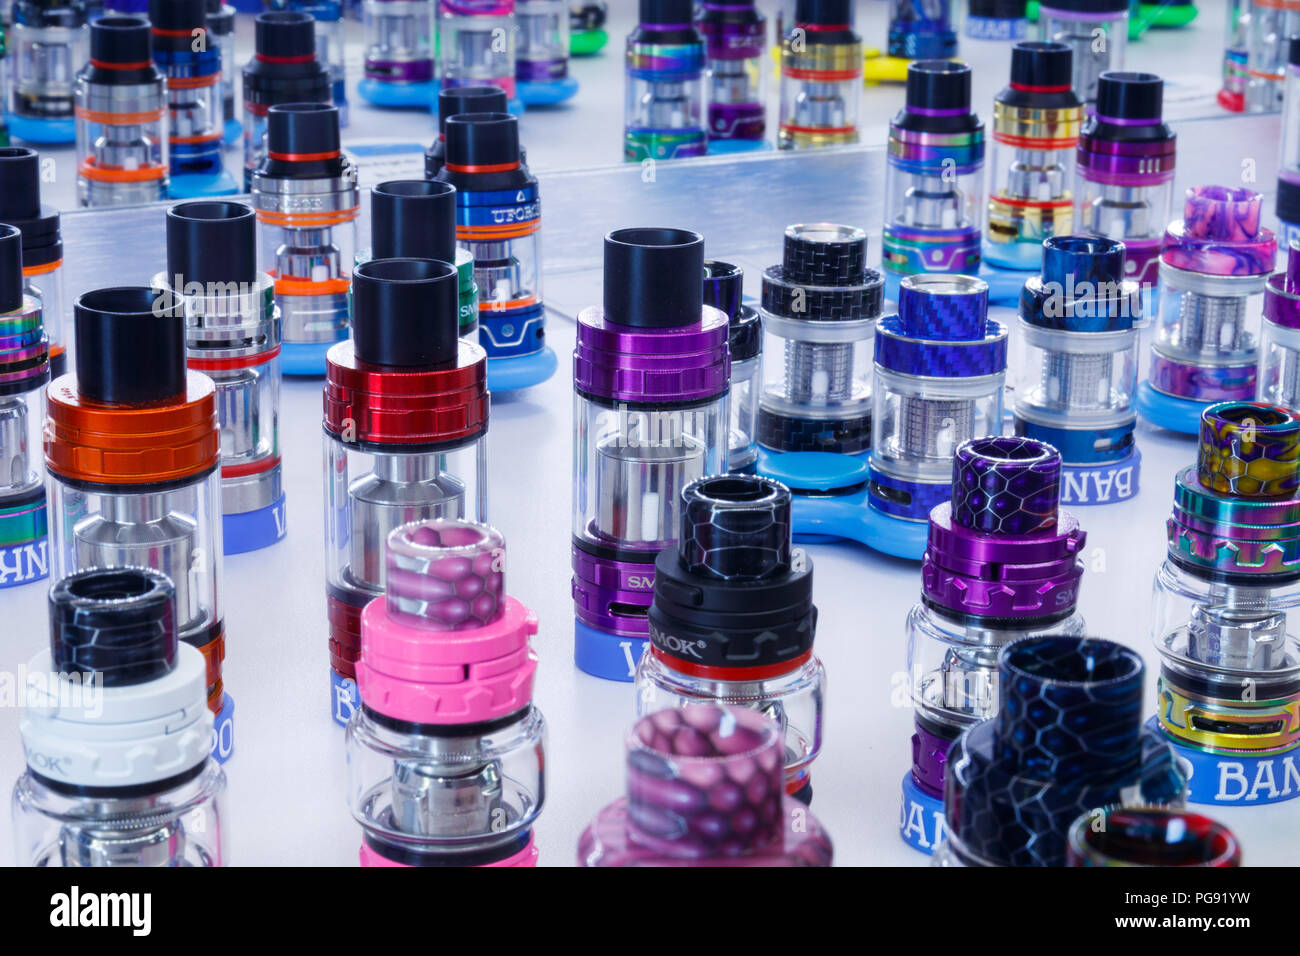 Indianapolis - Circa August 2018: Colorful vape cartridges in a vaping shop. The benefits of vaping as a way to quit smoking far outweigh the health r - Stock Image